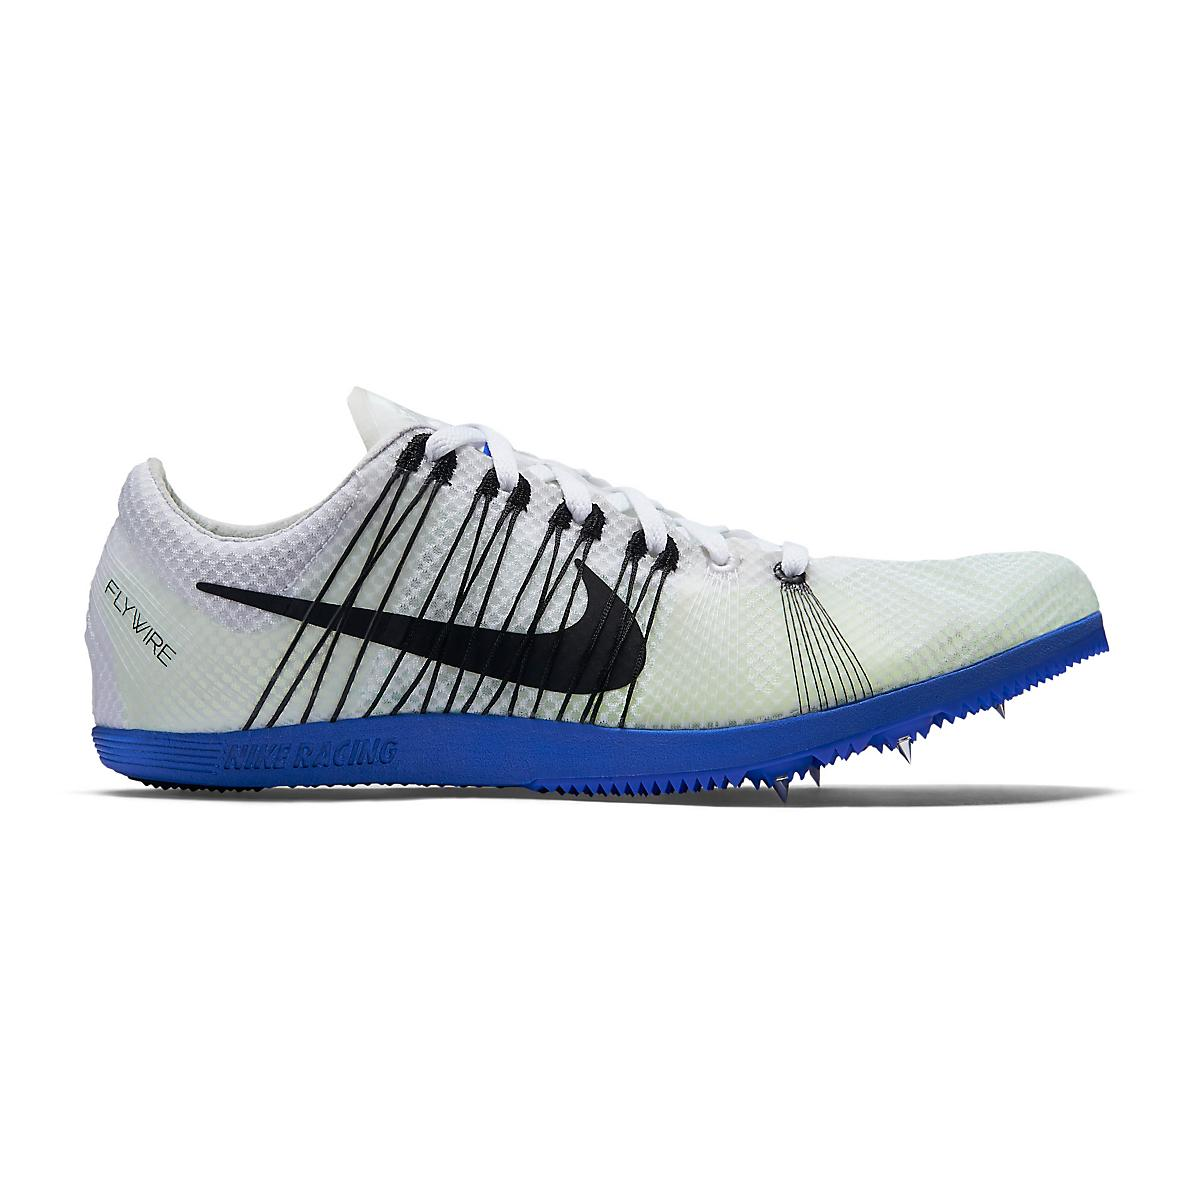 b0c4b70fae17 Mens Nike Zoom Matumbo 2 Track and Field Shoe at Road Runner Sports